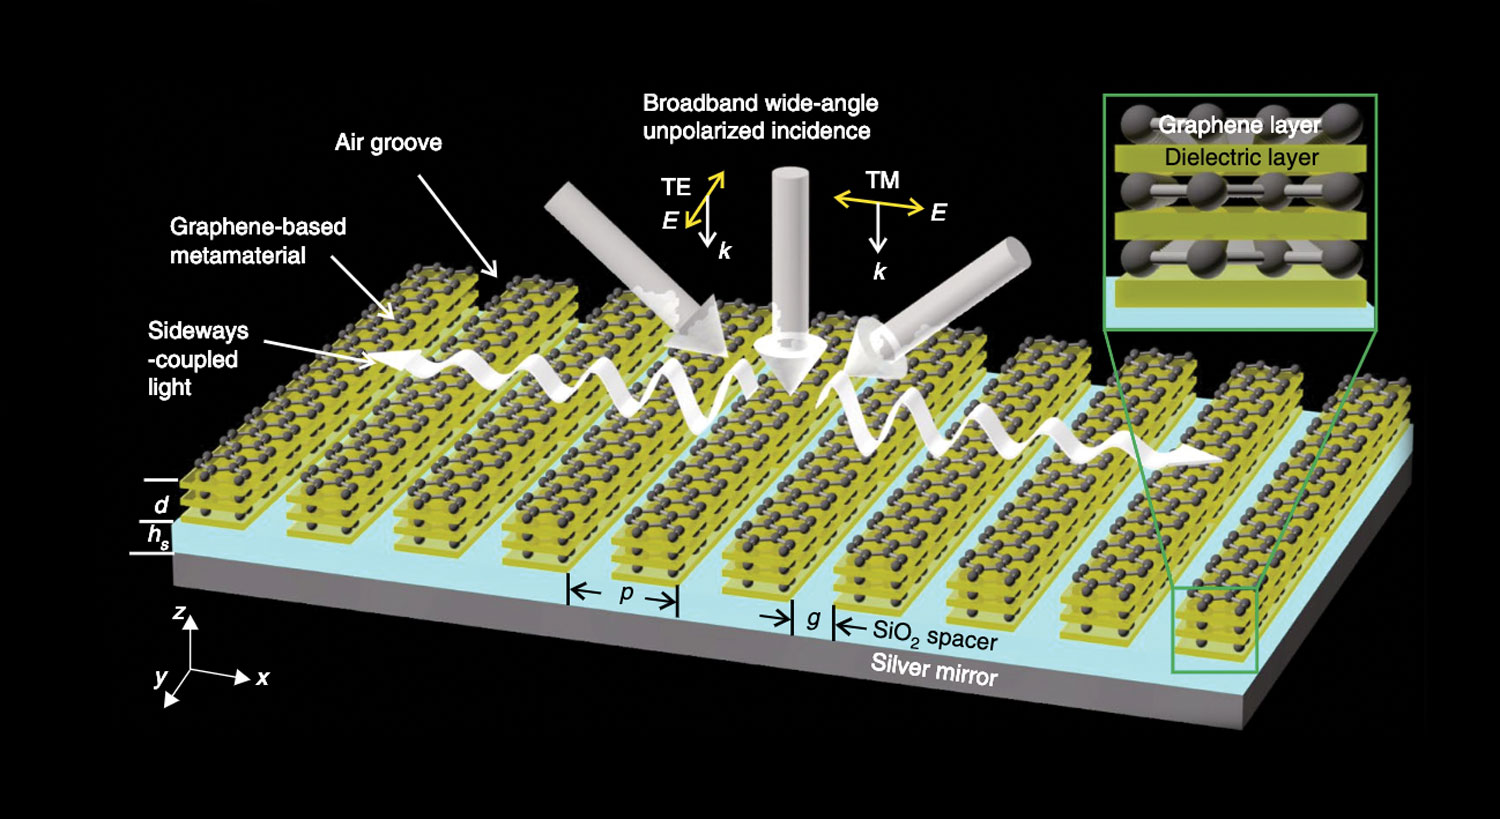 Grooves in the graphene metamaterial help maximise its absorption of light.